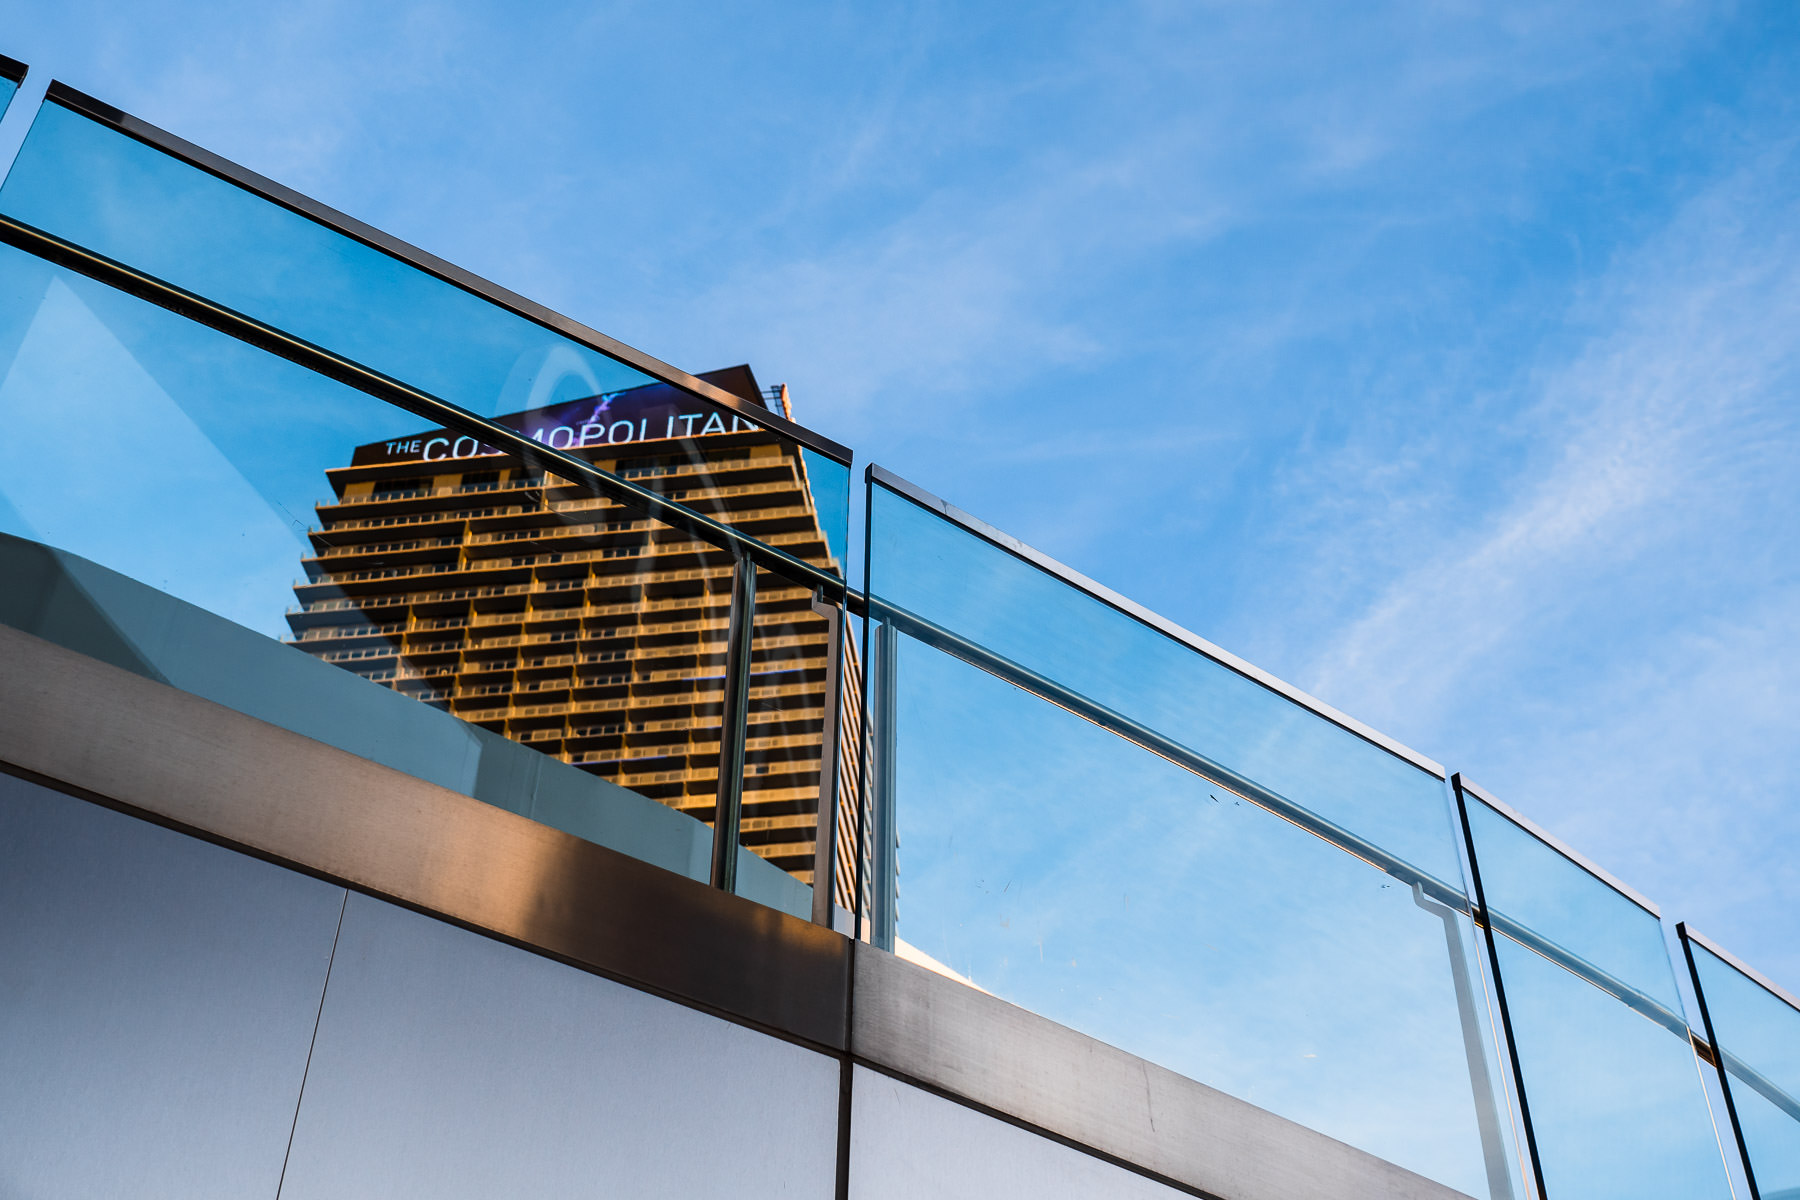 The Cosmopolitan of Las Vegas rises over an adjacent walkway along the Las Vegas Strip.